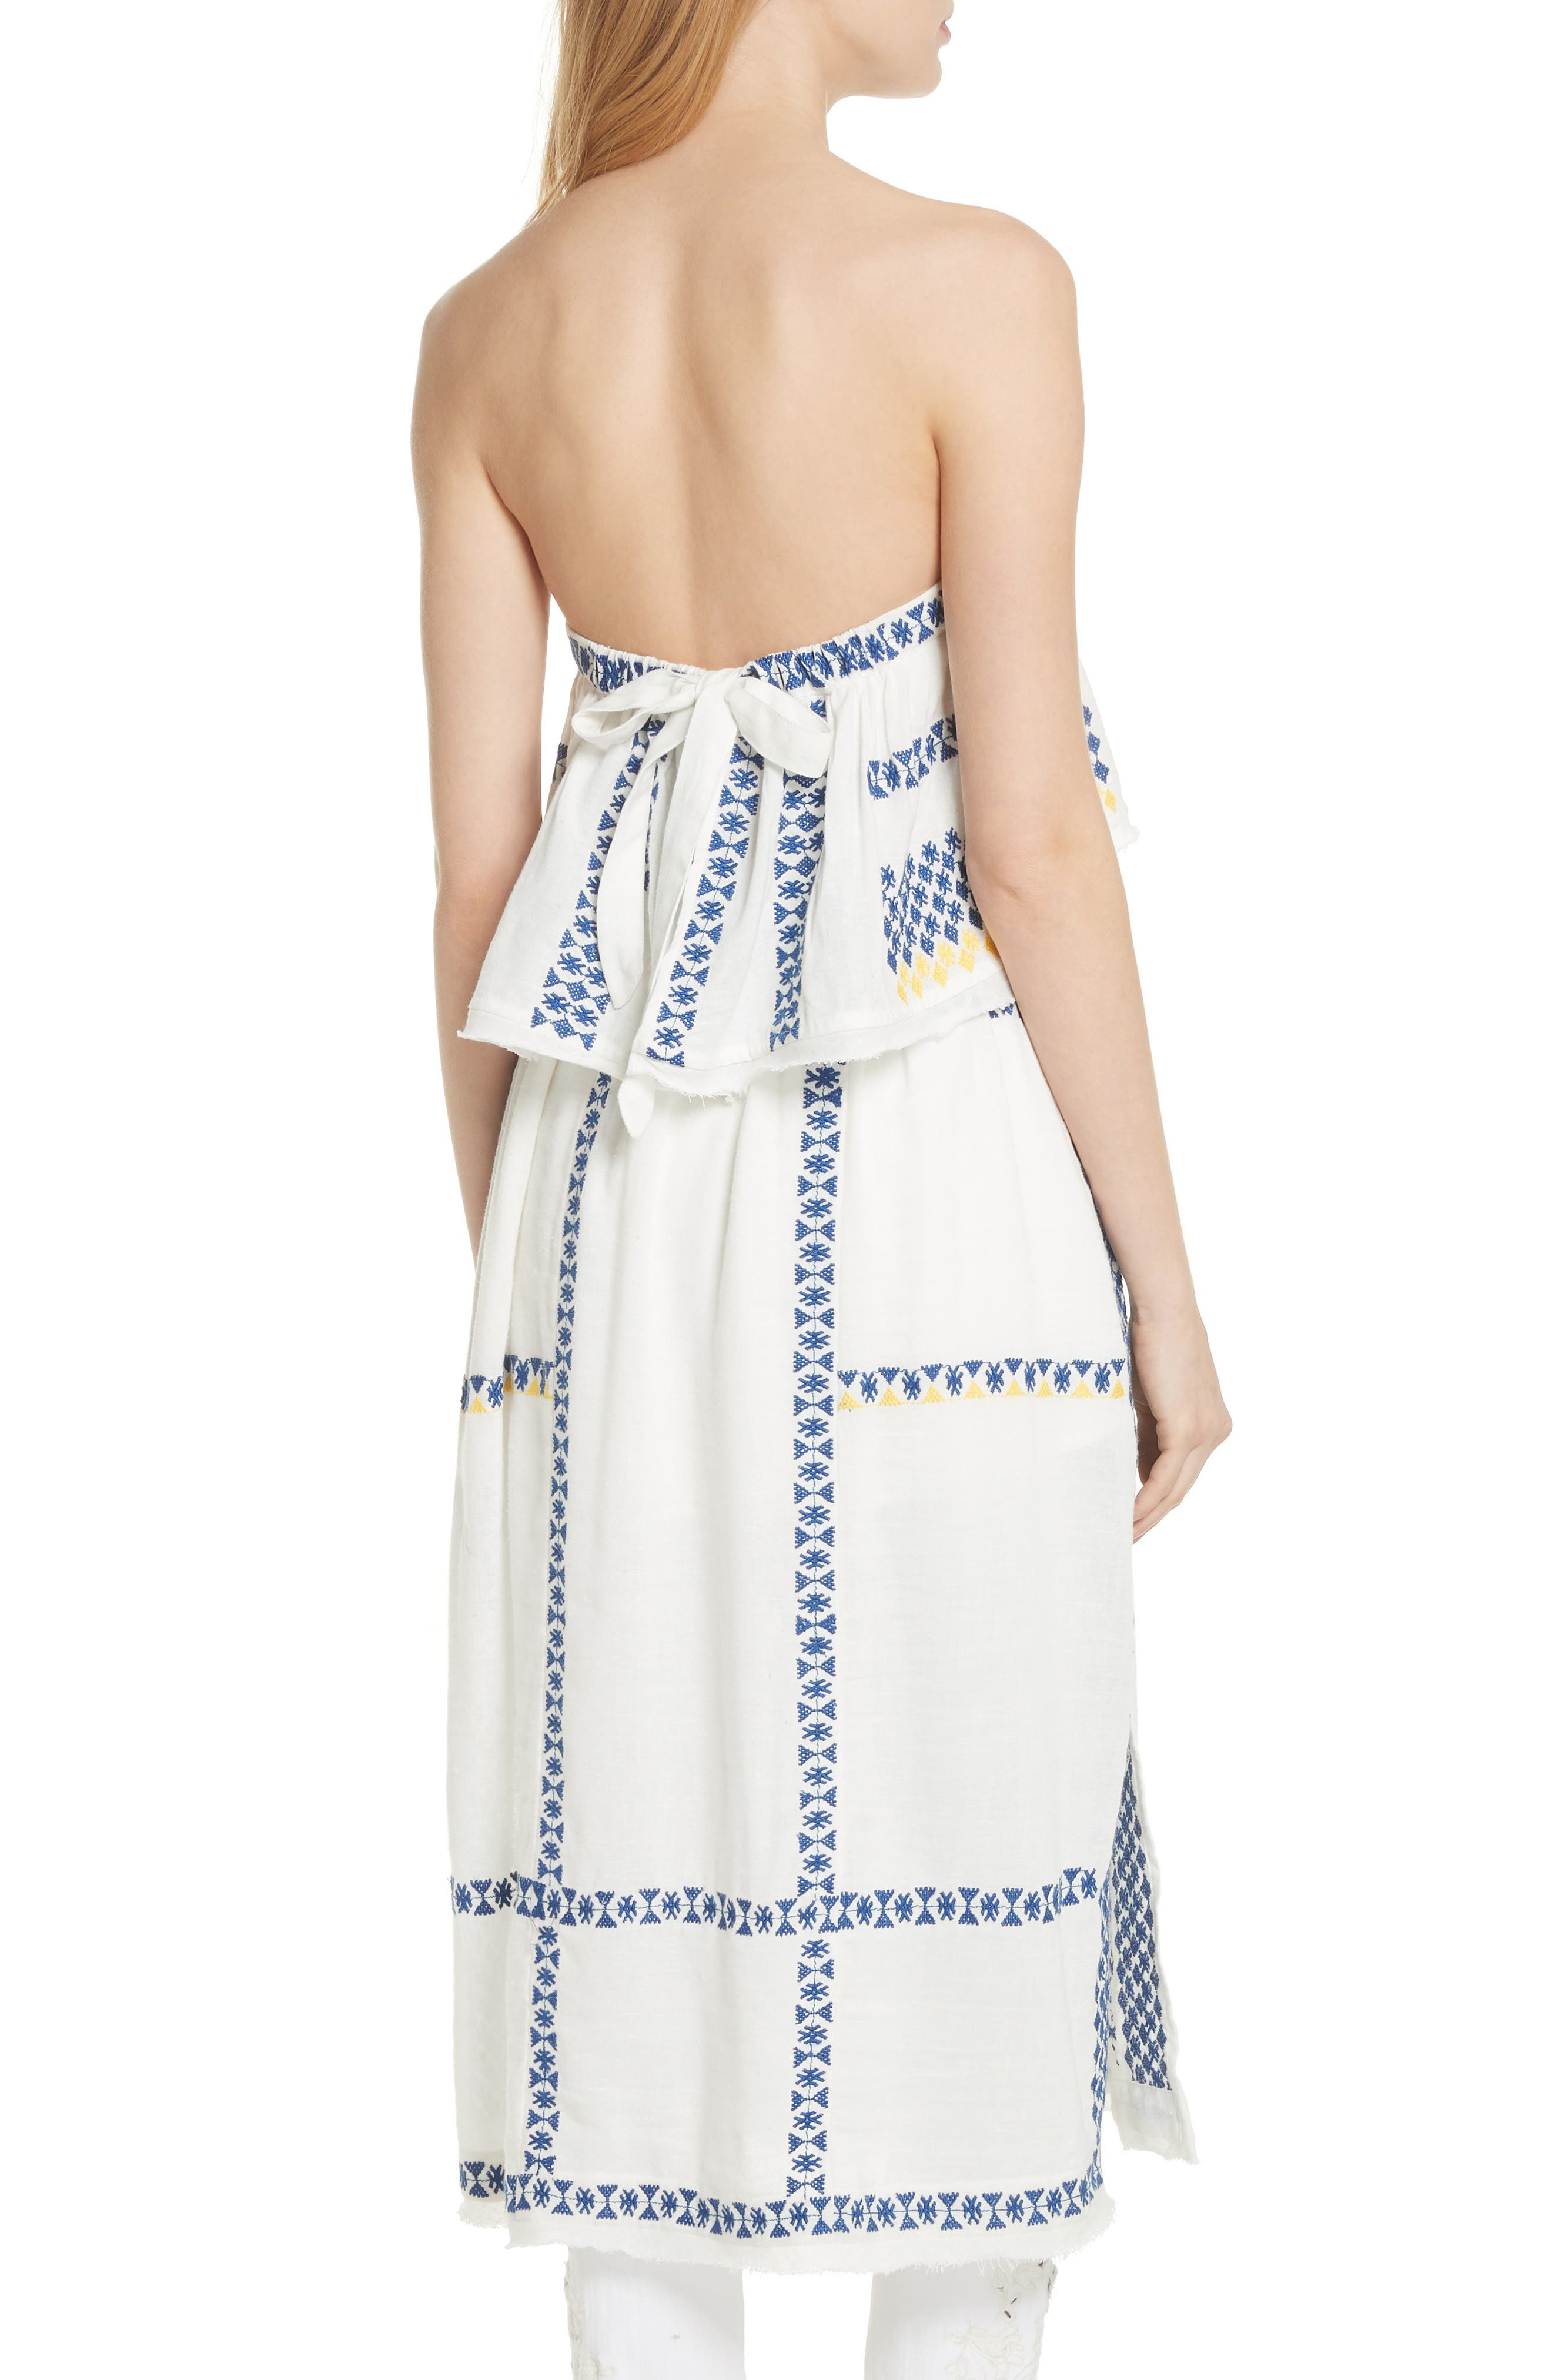 Wild Romance Embroidered Dress,                             Alternate thumbnail 2, color,                             903